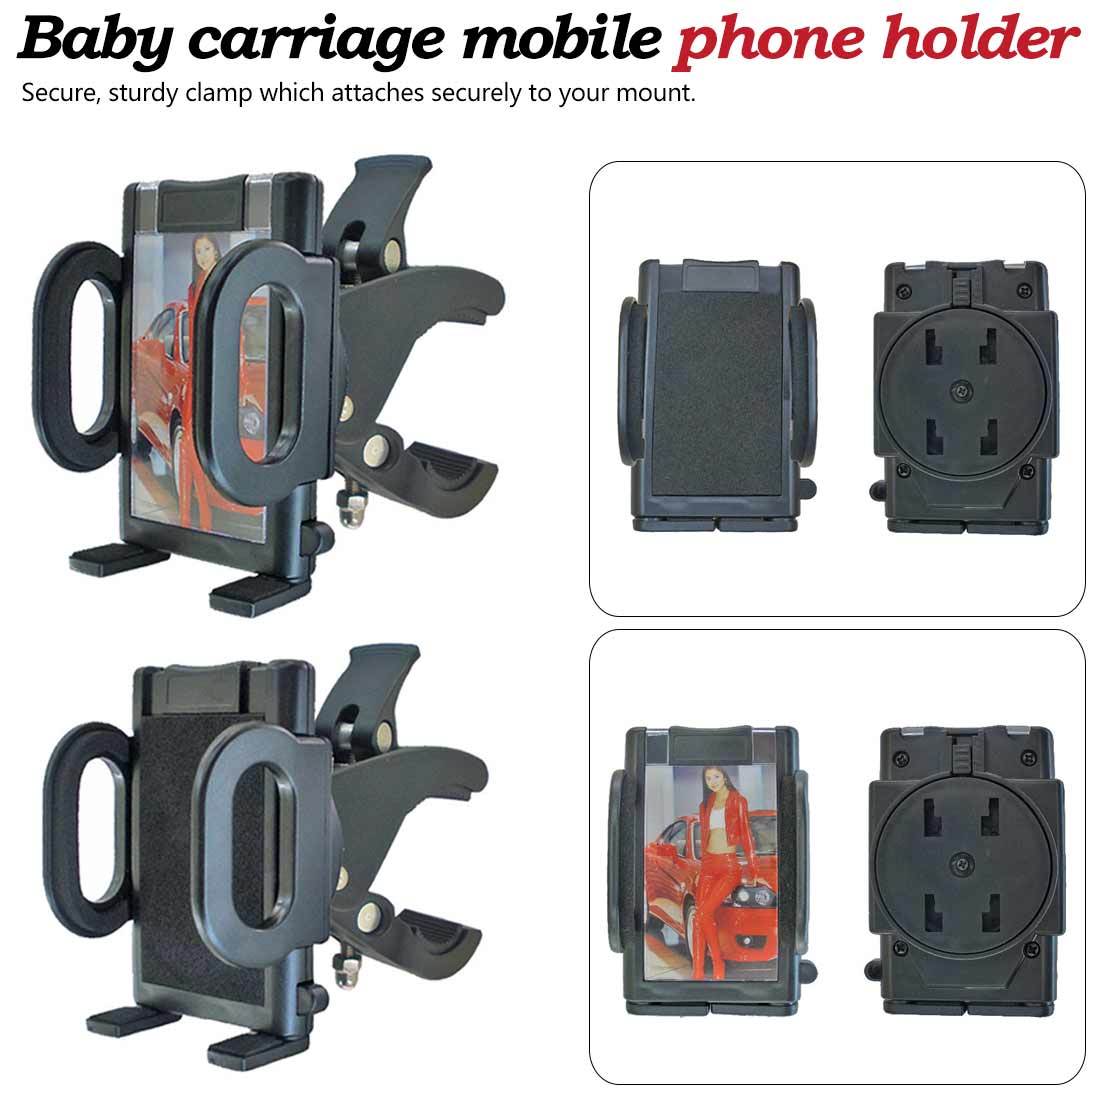 Infant Stroller Bicycle Carriage Cart Accessory Plastic Bottle Cup Holder Baby Activity Produ Baby Stroller Mobile Phone Holder